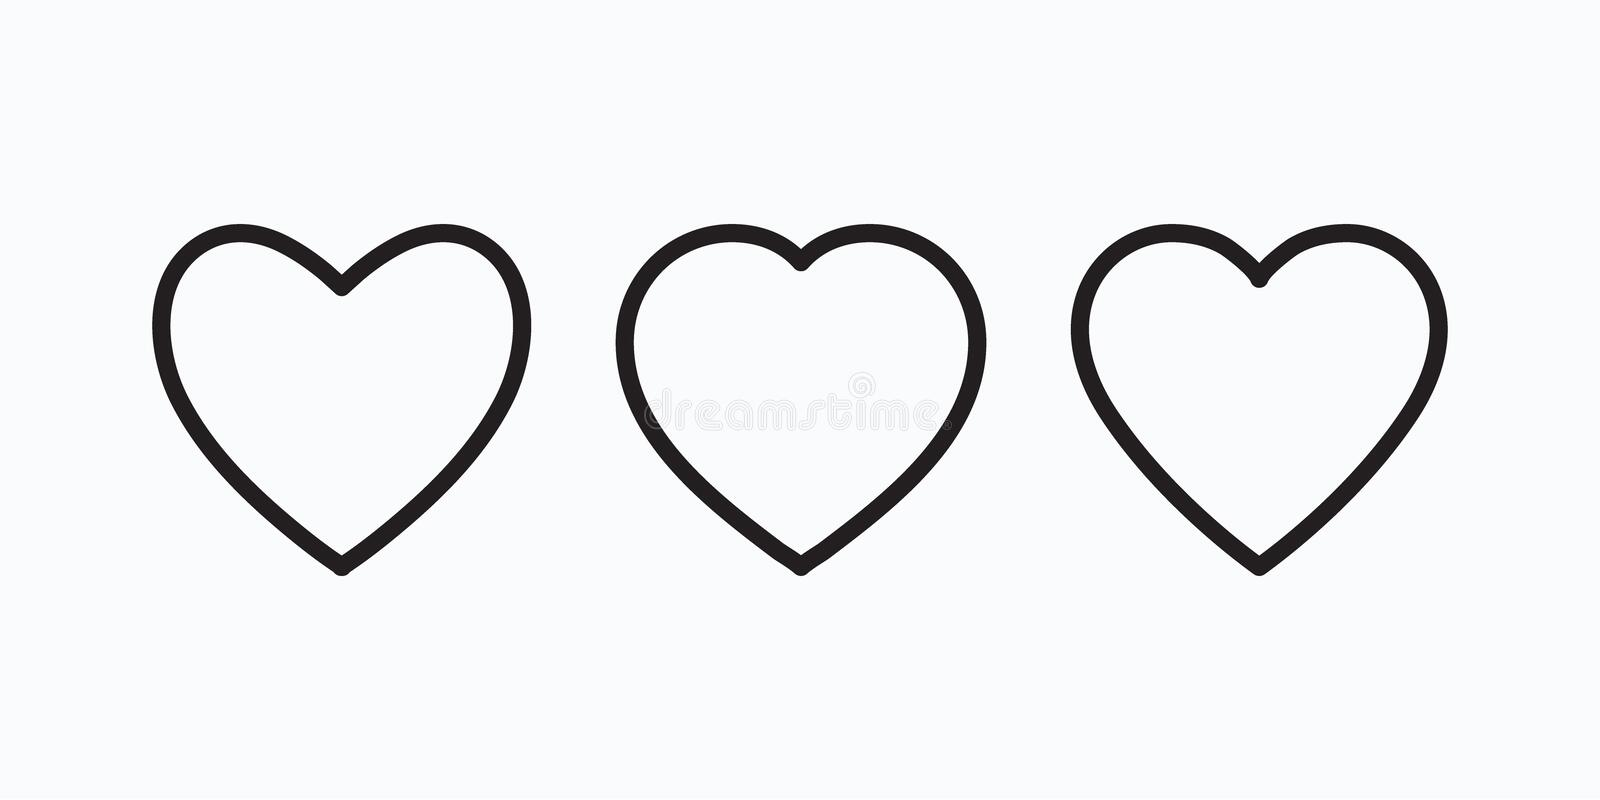 New heart icons, concept of love, linear icons thin grey line vector illustration